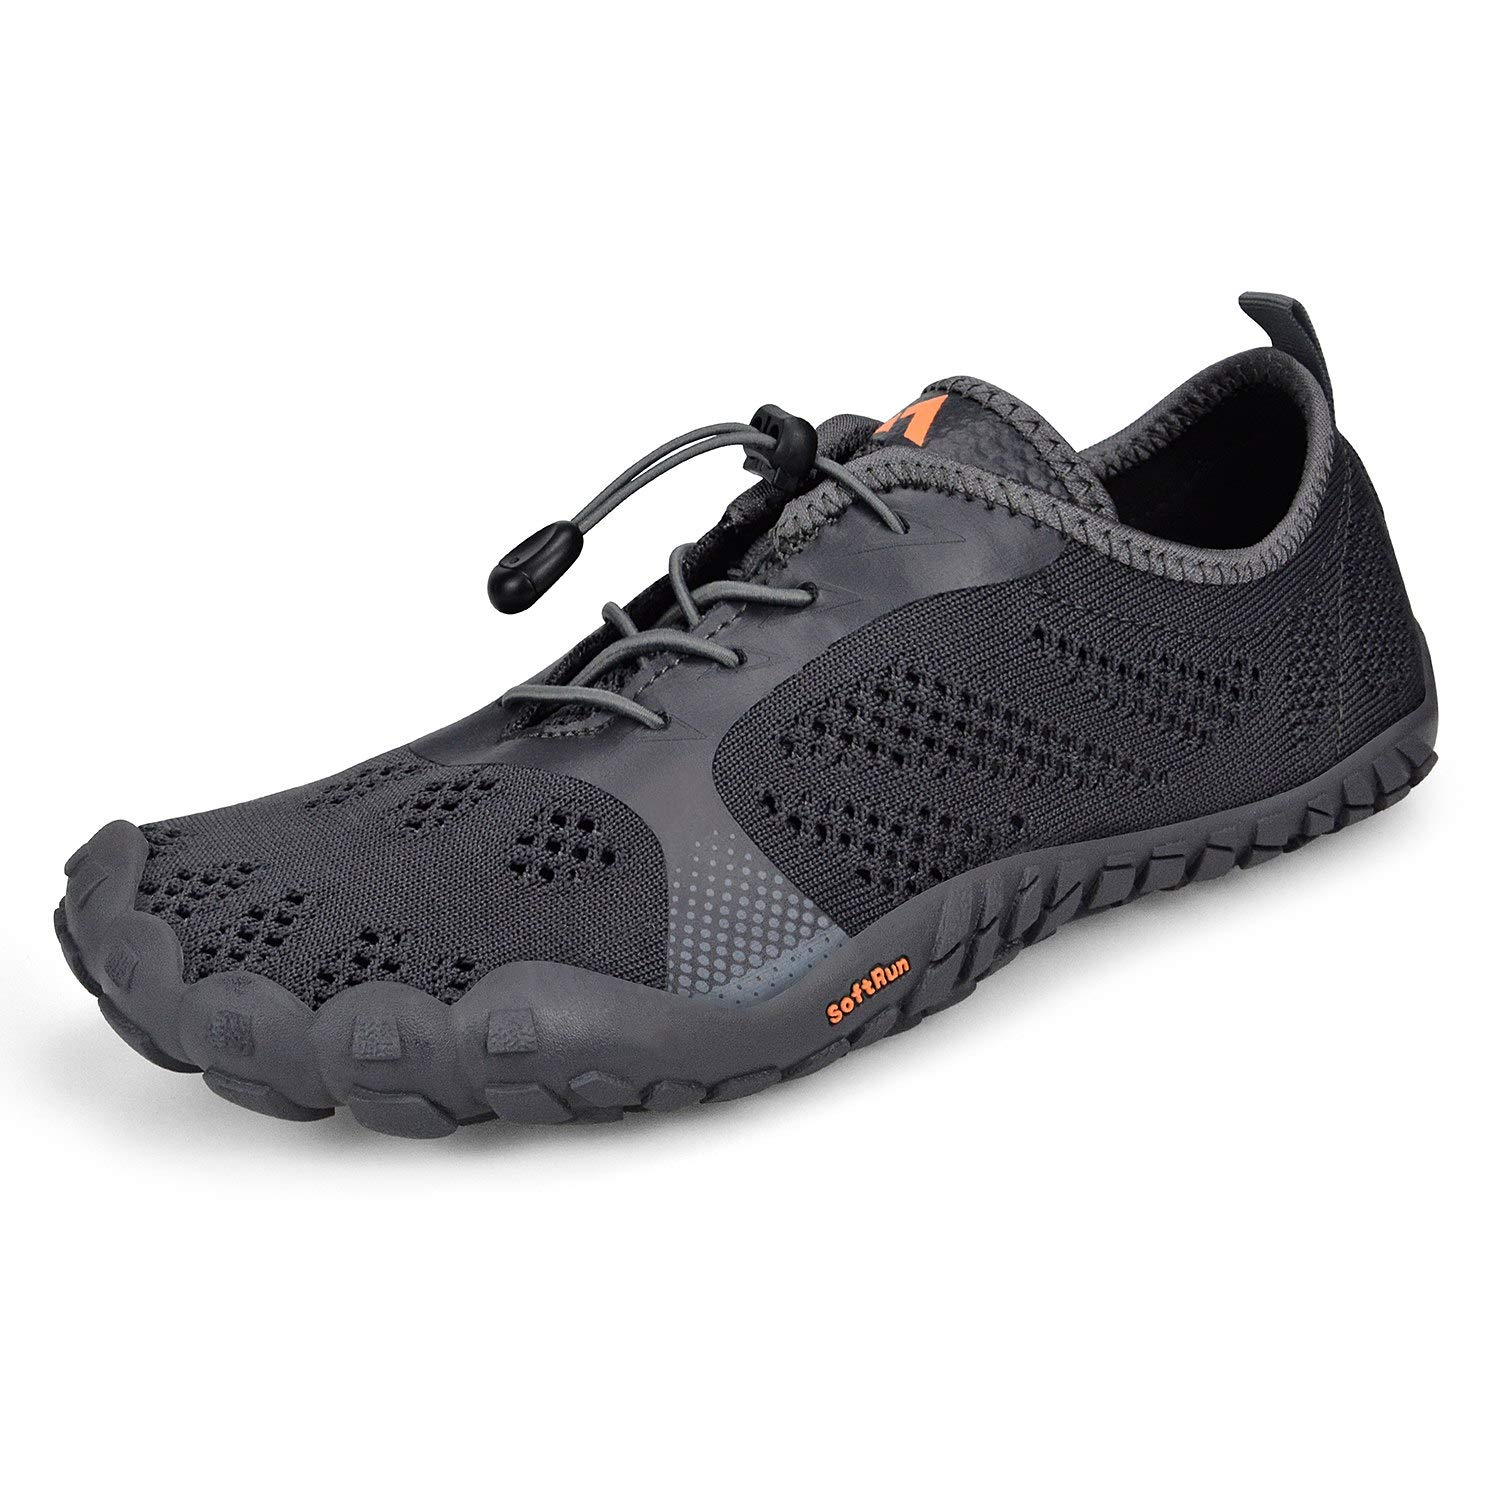 Troadlop Men's Barefoot Hiking Shoes Lightweight Breathable Mesh Trail Running Sneakers Grey6.5